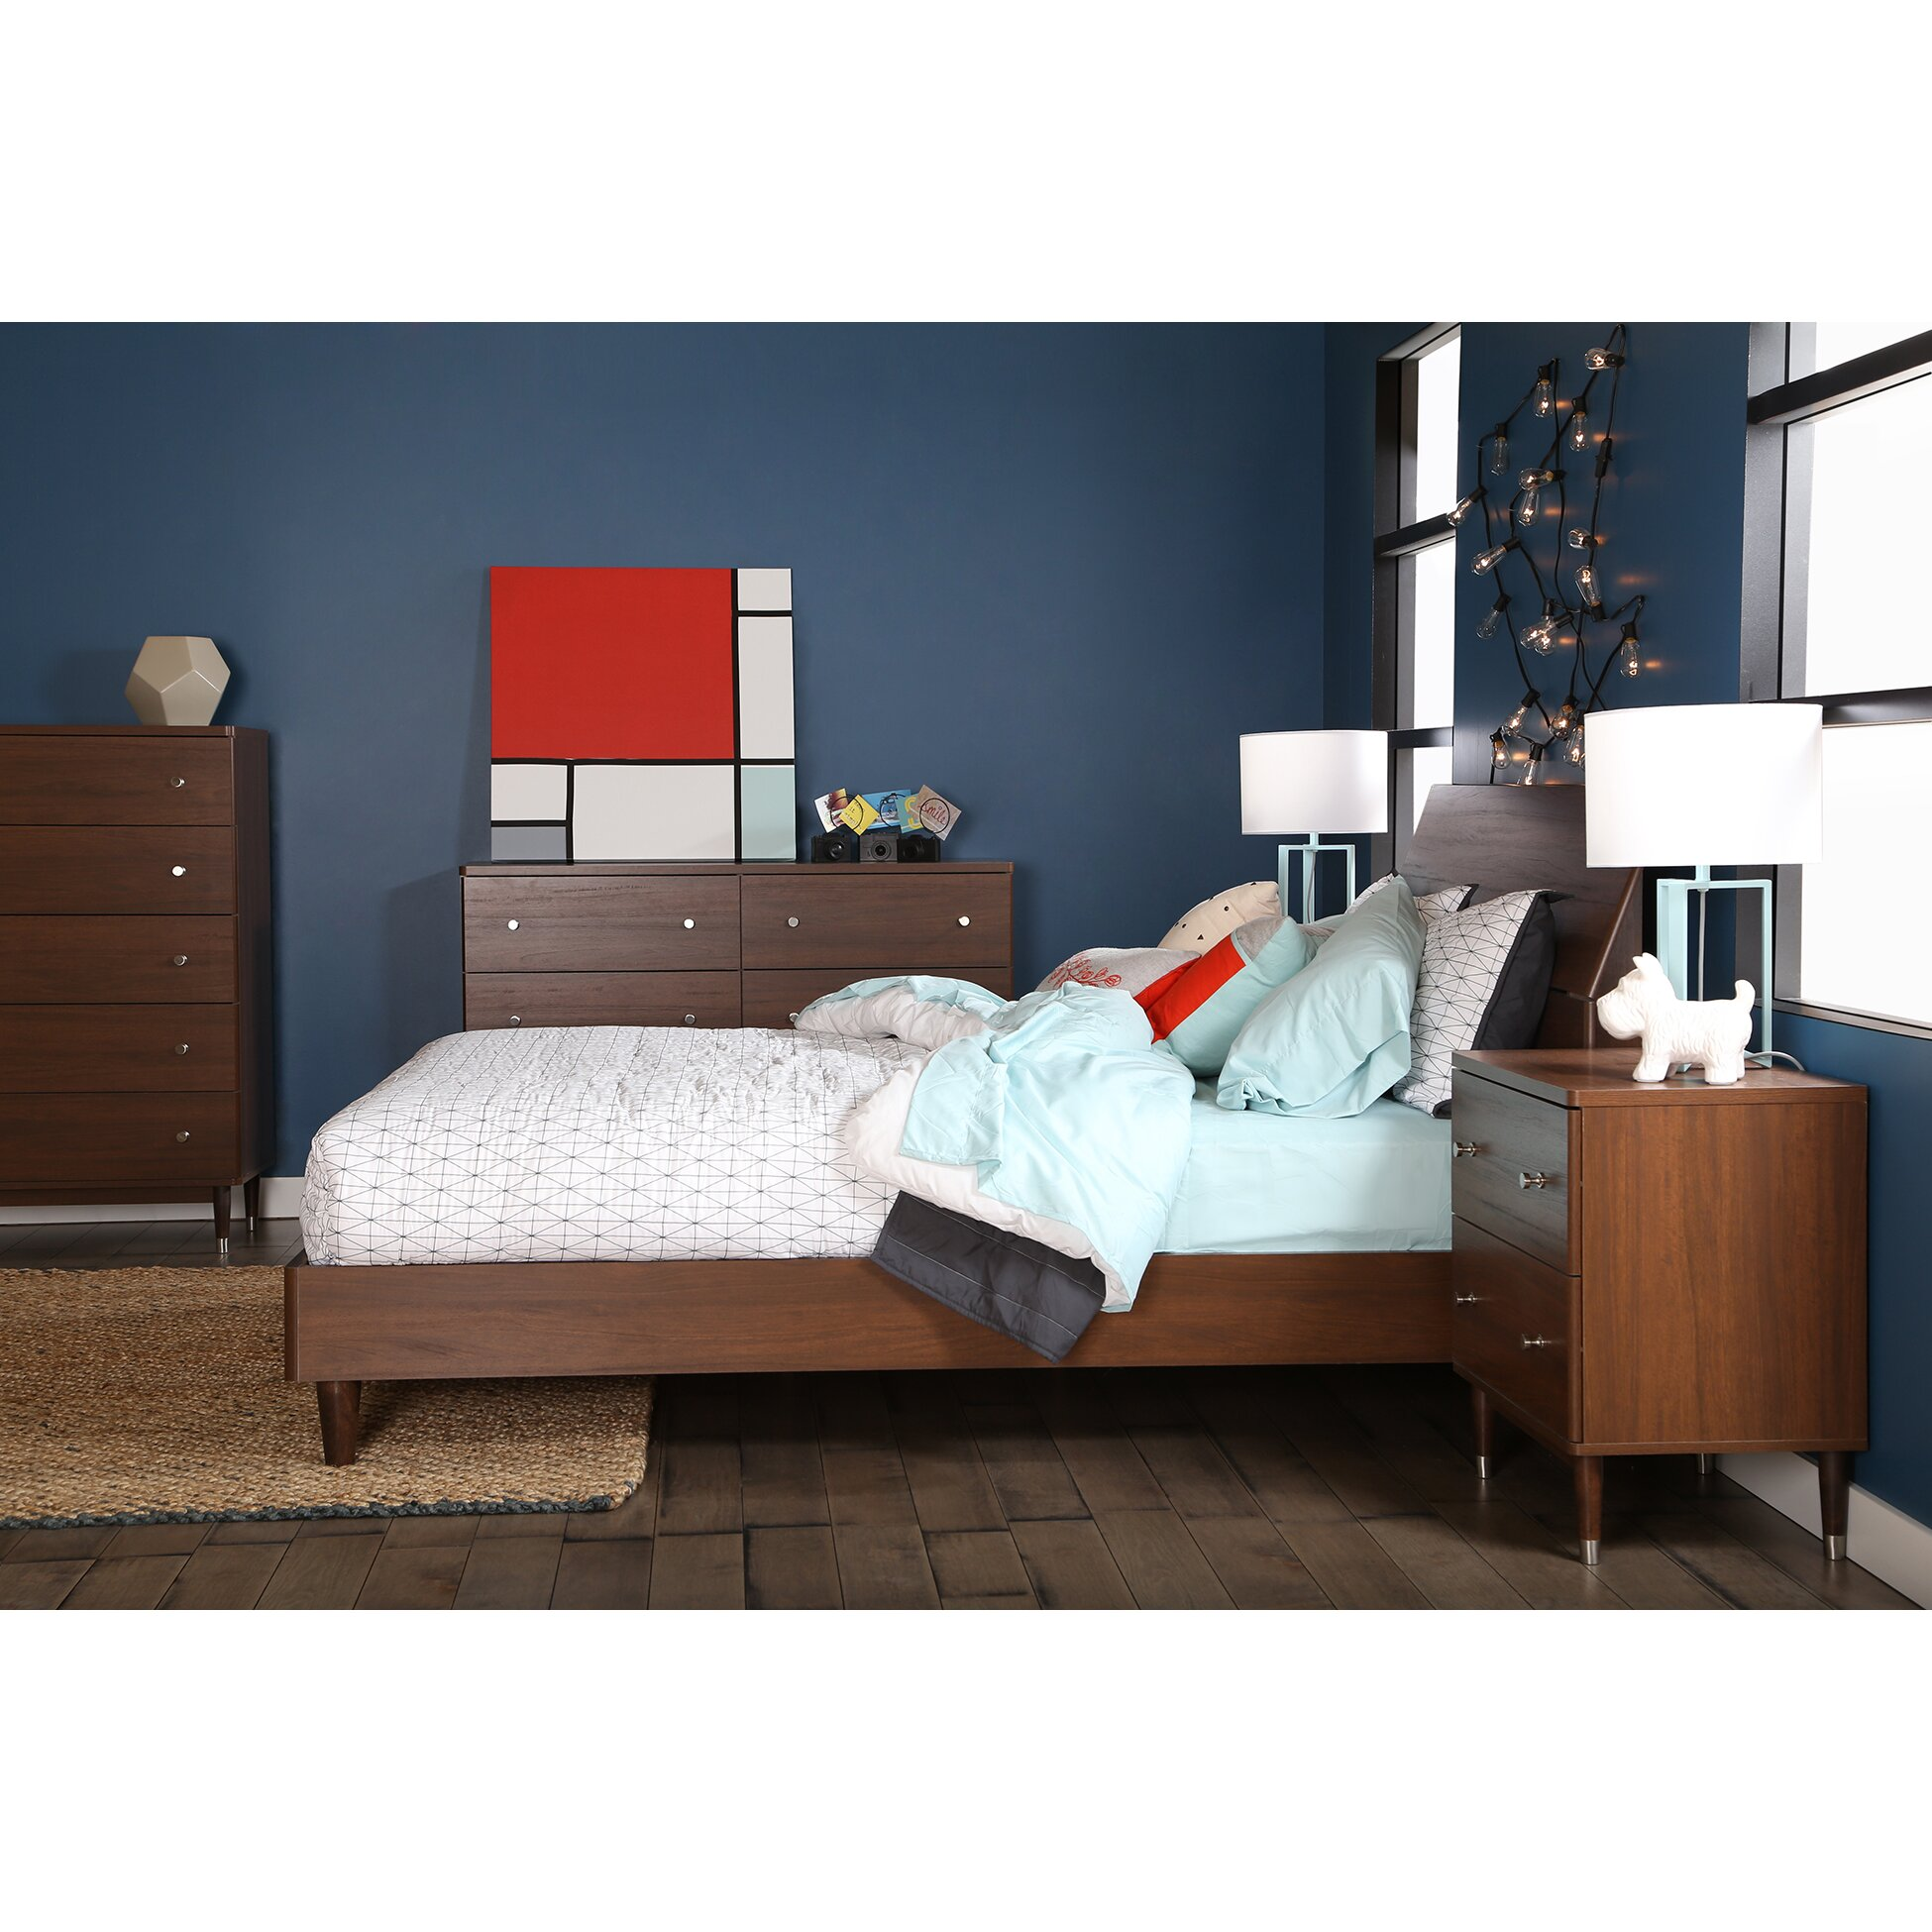 South Shore Bedroom Furniture South Shore Olly Queen Platform Customizable Bedroom Set Reviews